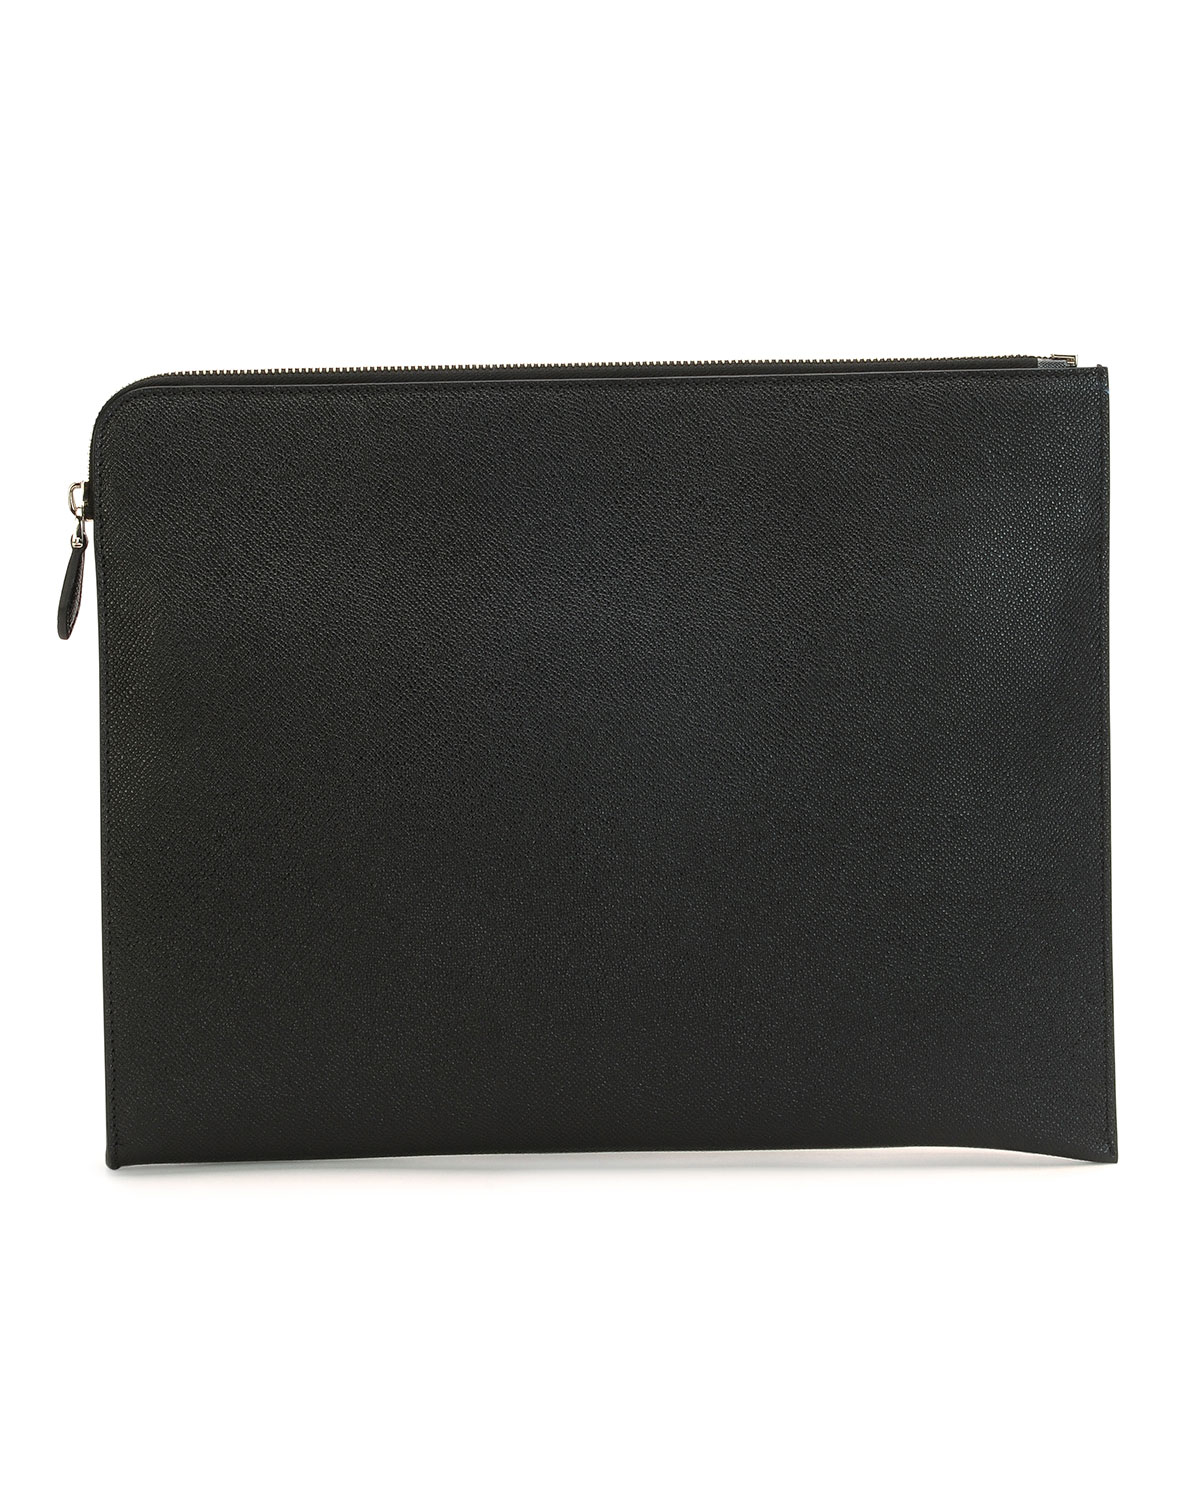 givenchy leather document holder in black for men lyst With givenchy document holder